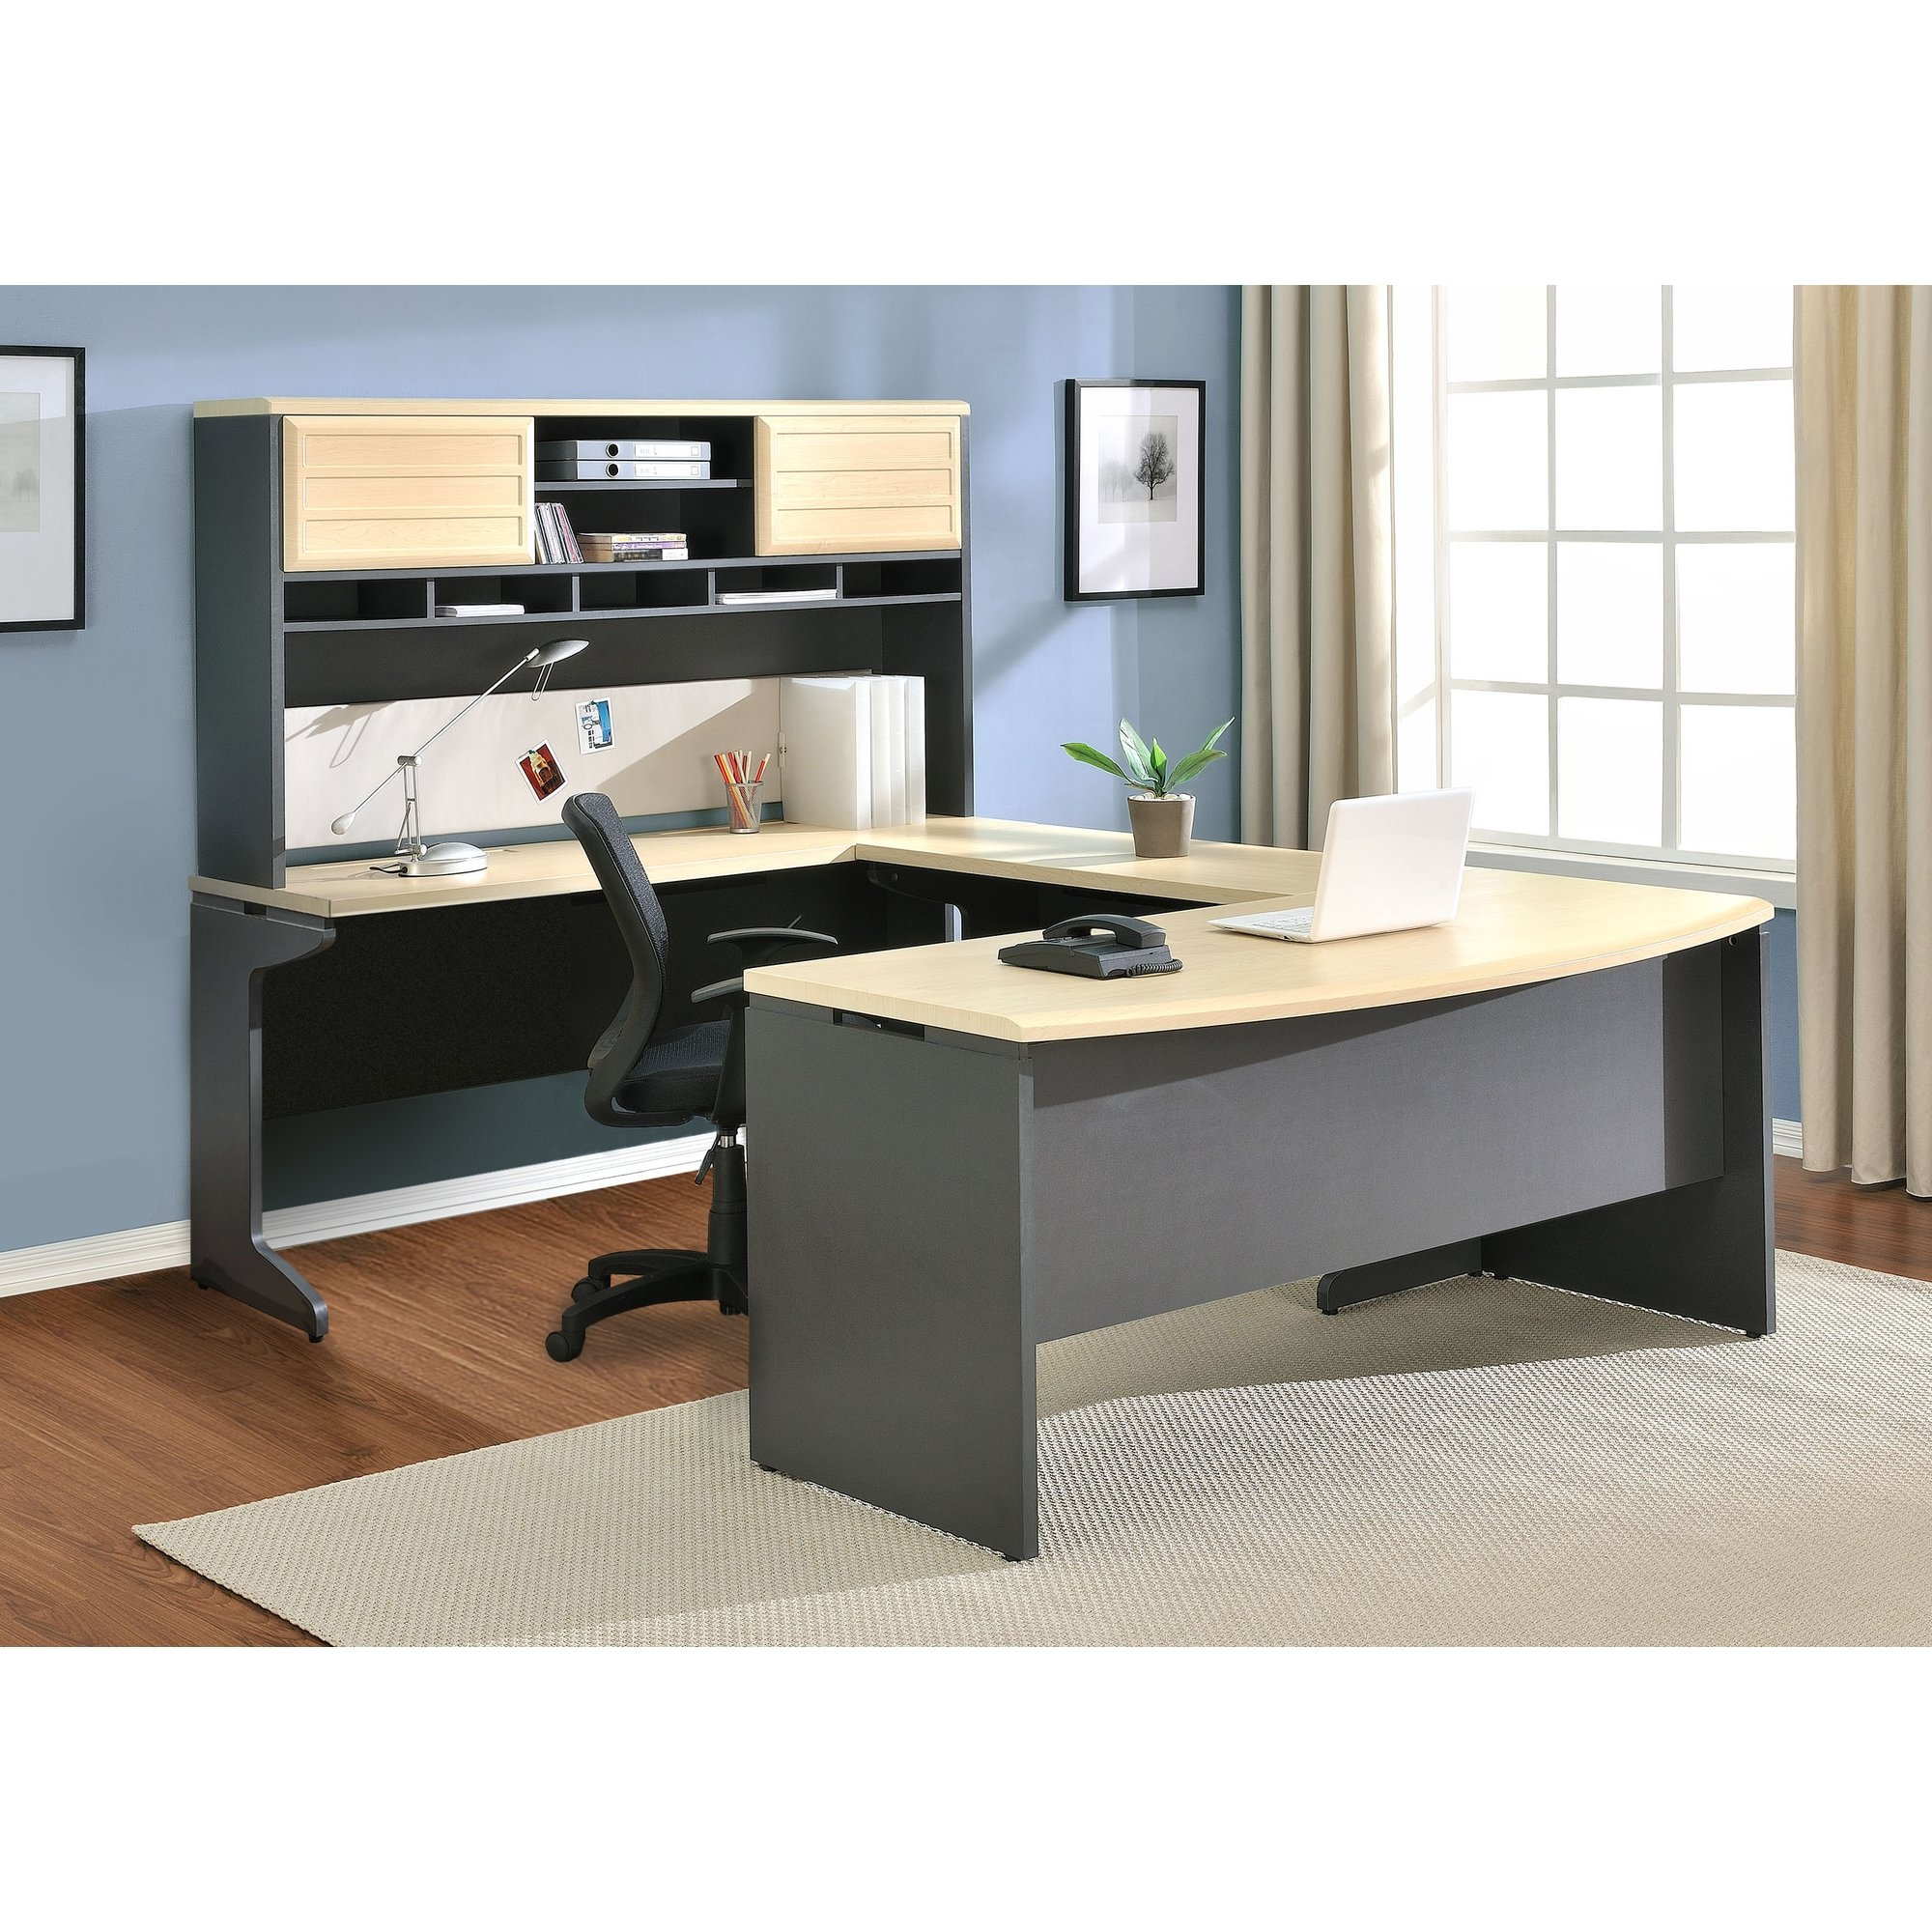 U Shaped Desks Youll Love Wayfair With C Shaped Sofas (Image 14 of 15)